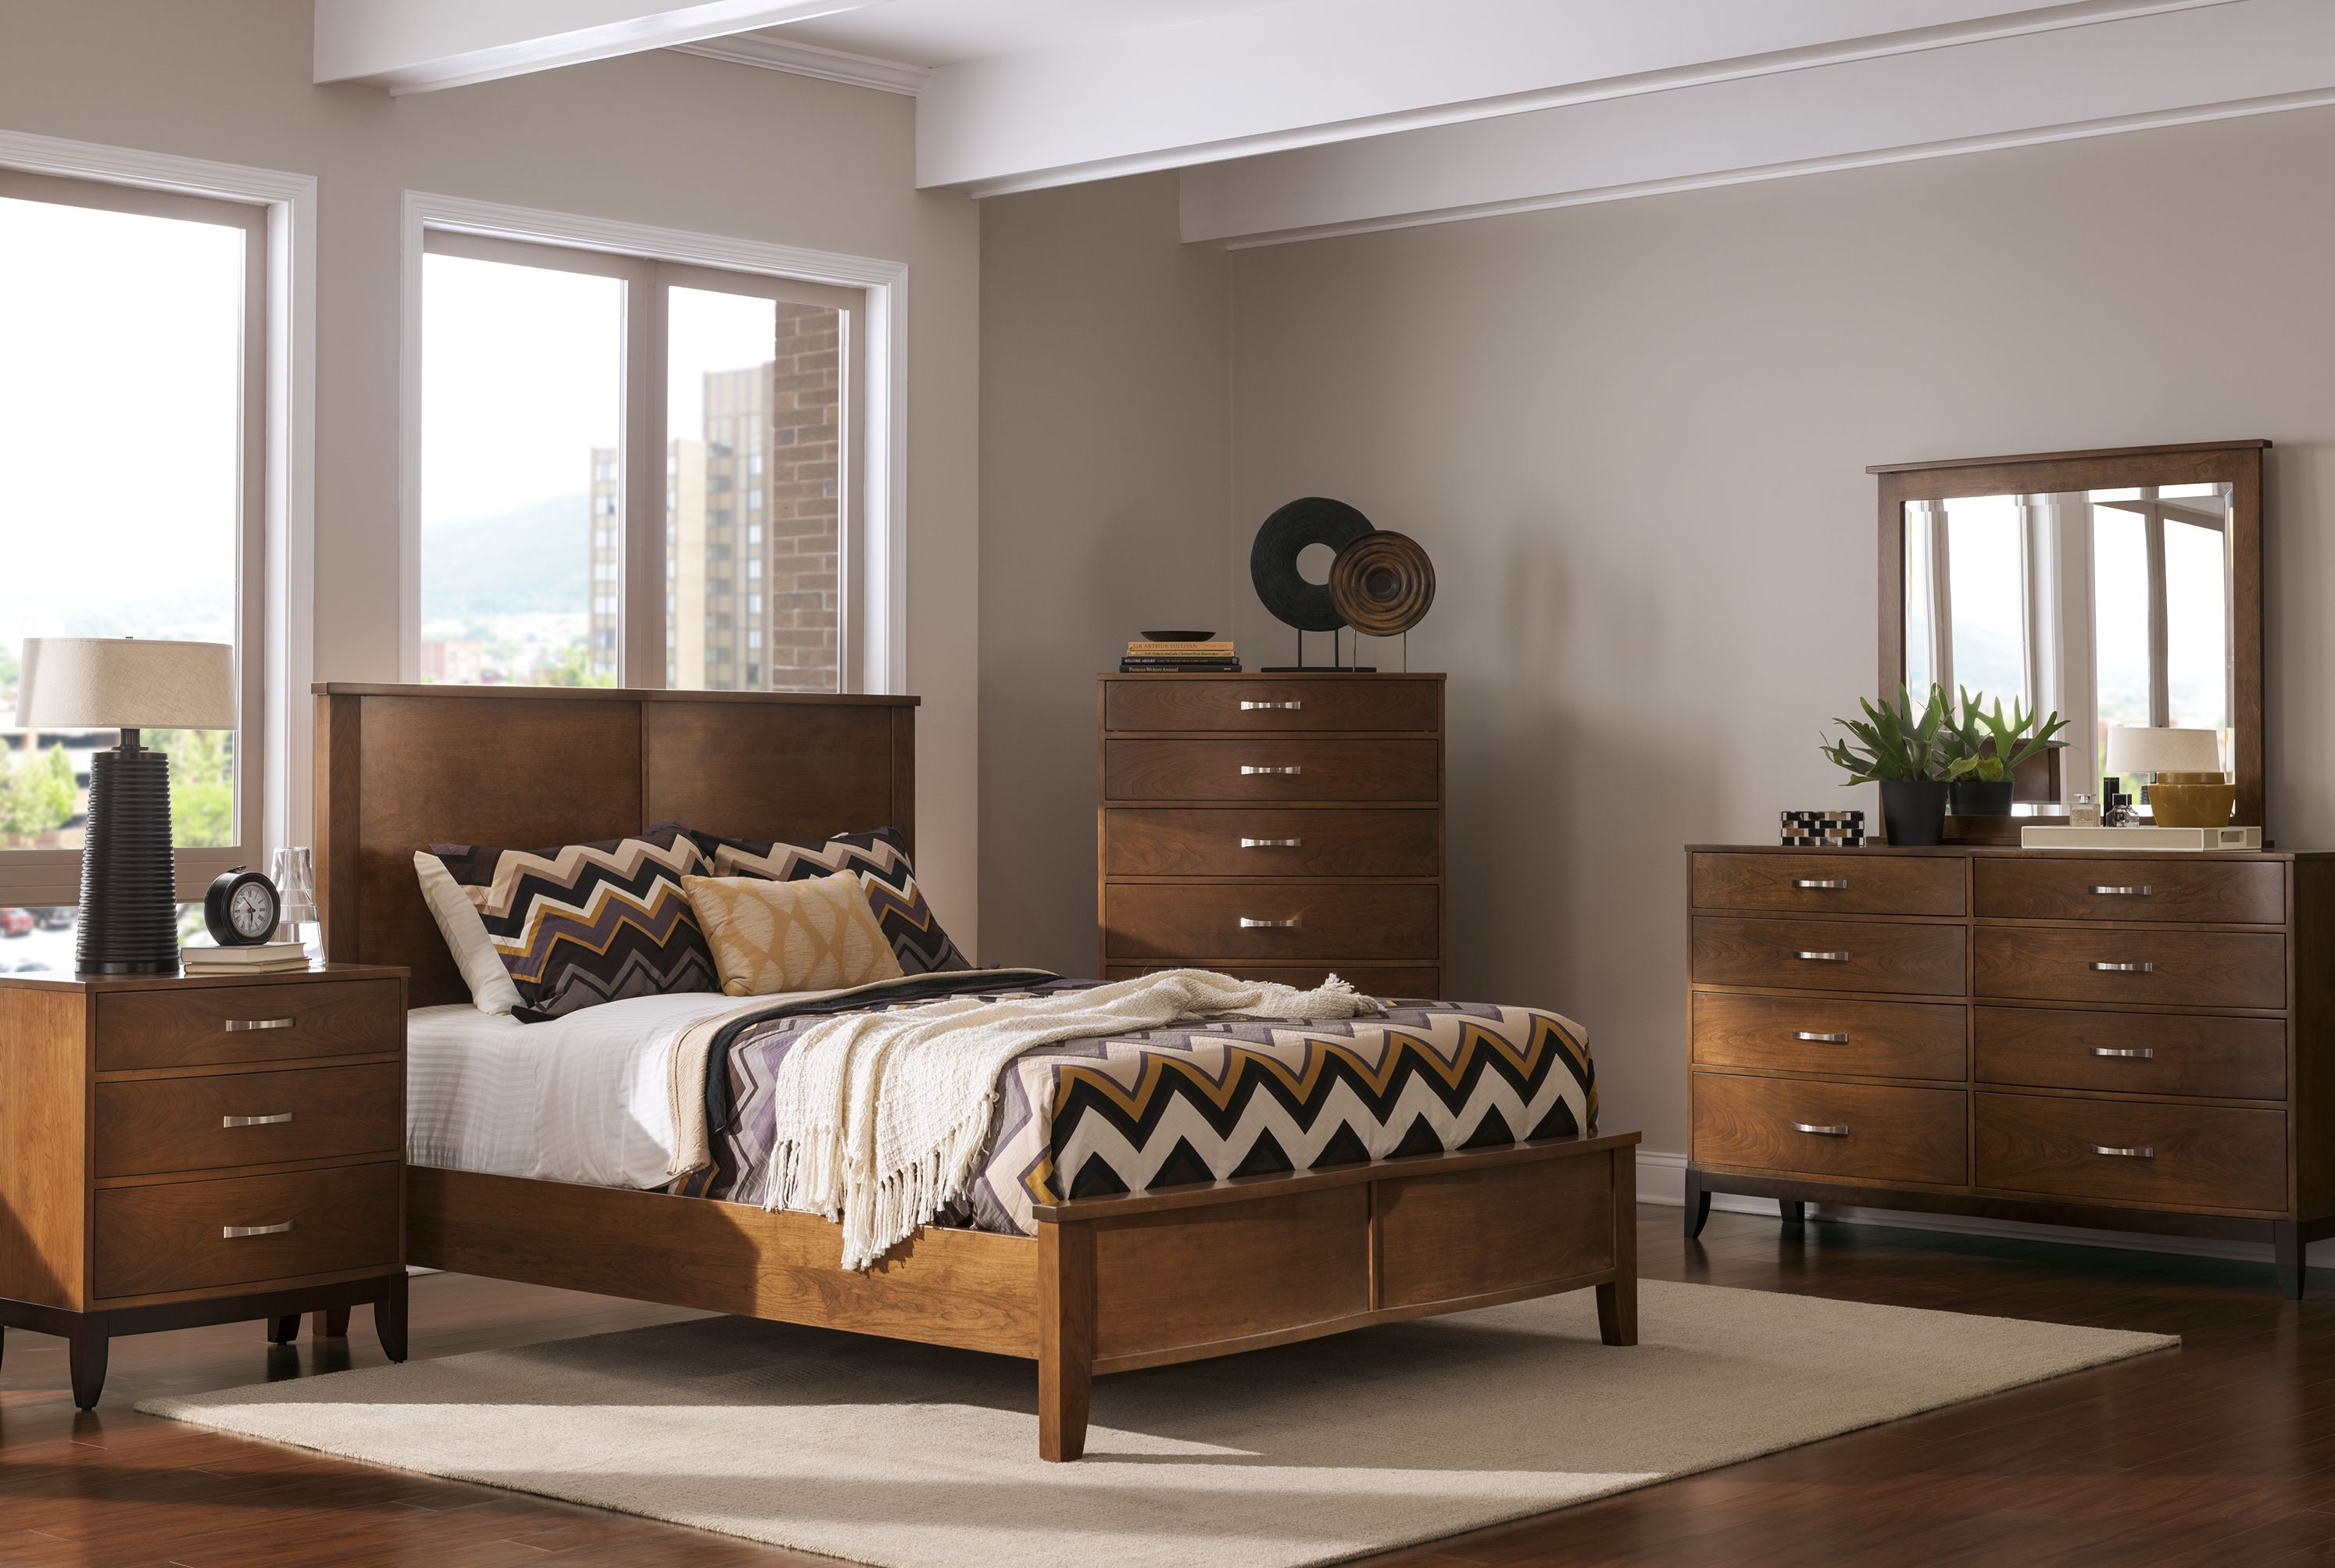 Logan Bedroom Collection By Keystone American Made Solid Wood Furniture Beautiful Bedroom Furniture Furniture Amish Furniture Bedroom